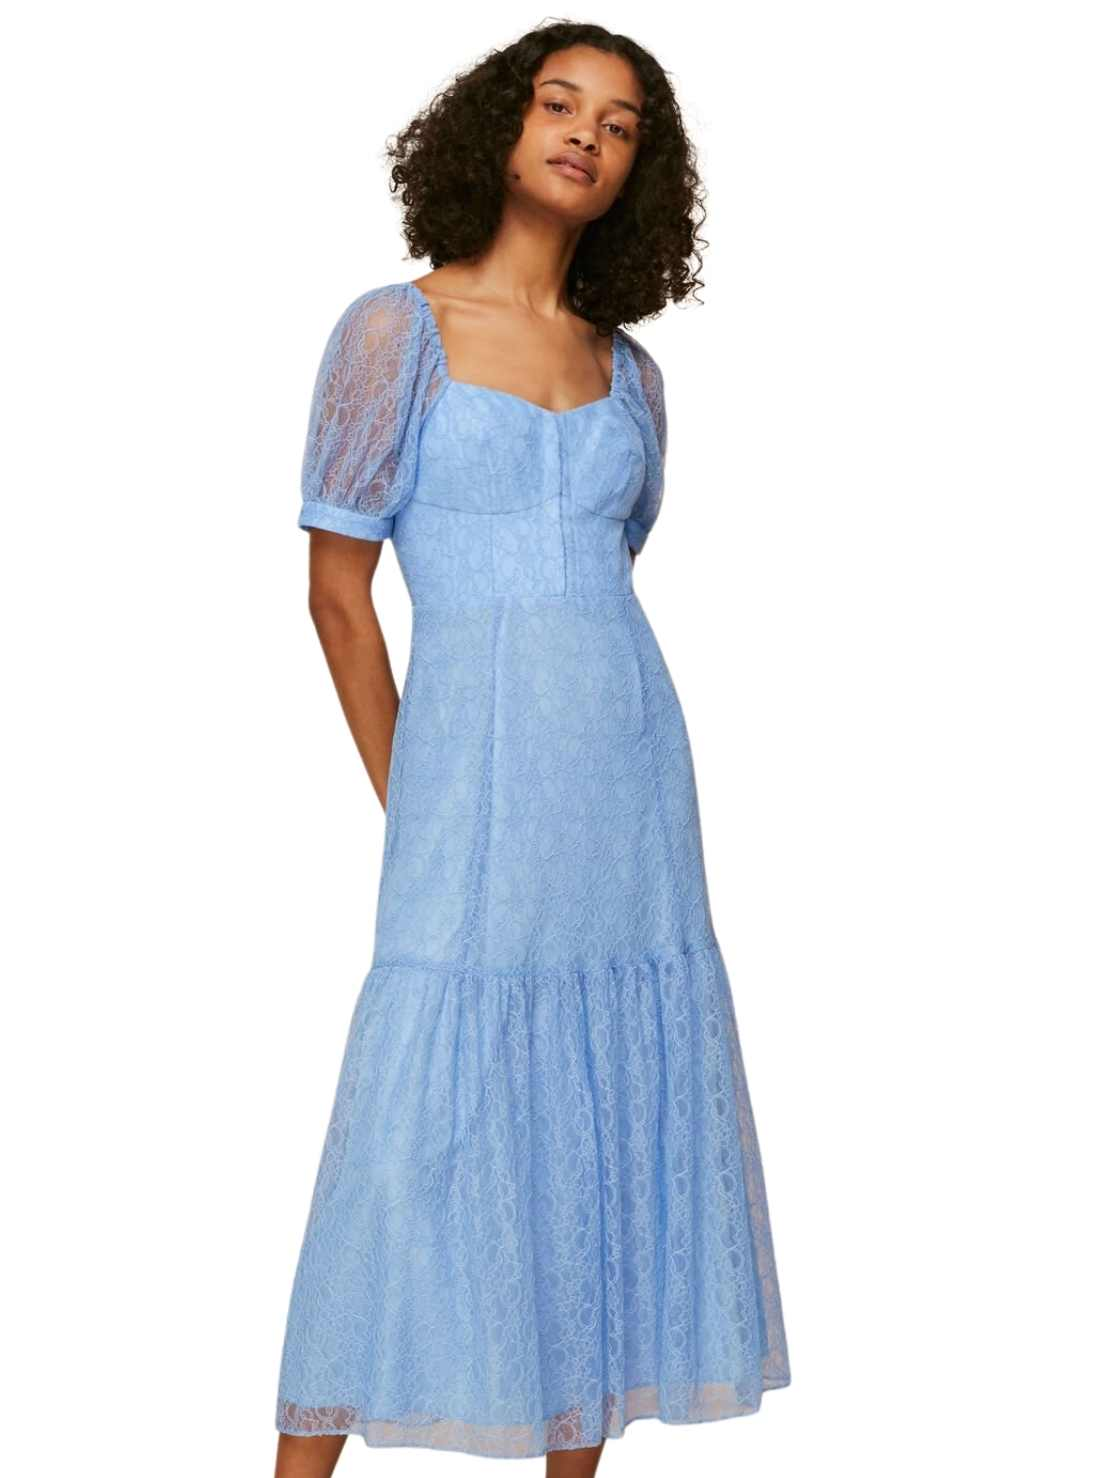 Whistles Lace Corset Dress Soft Shade Blue